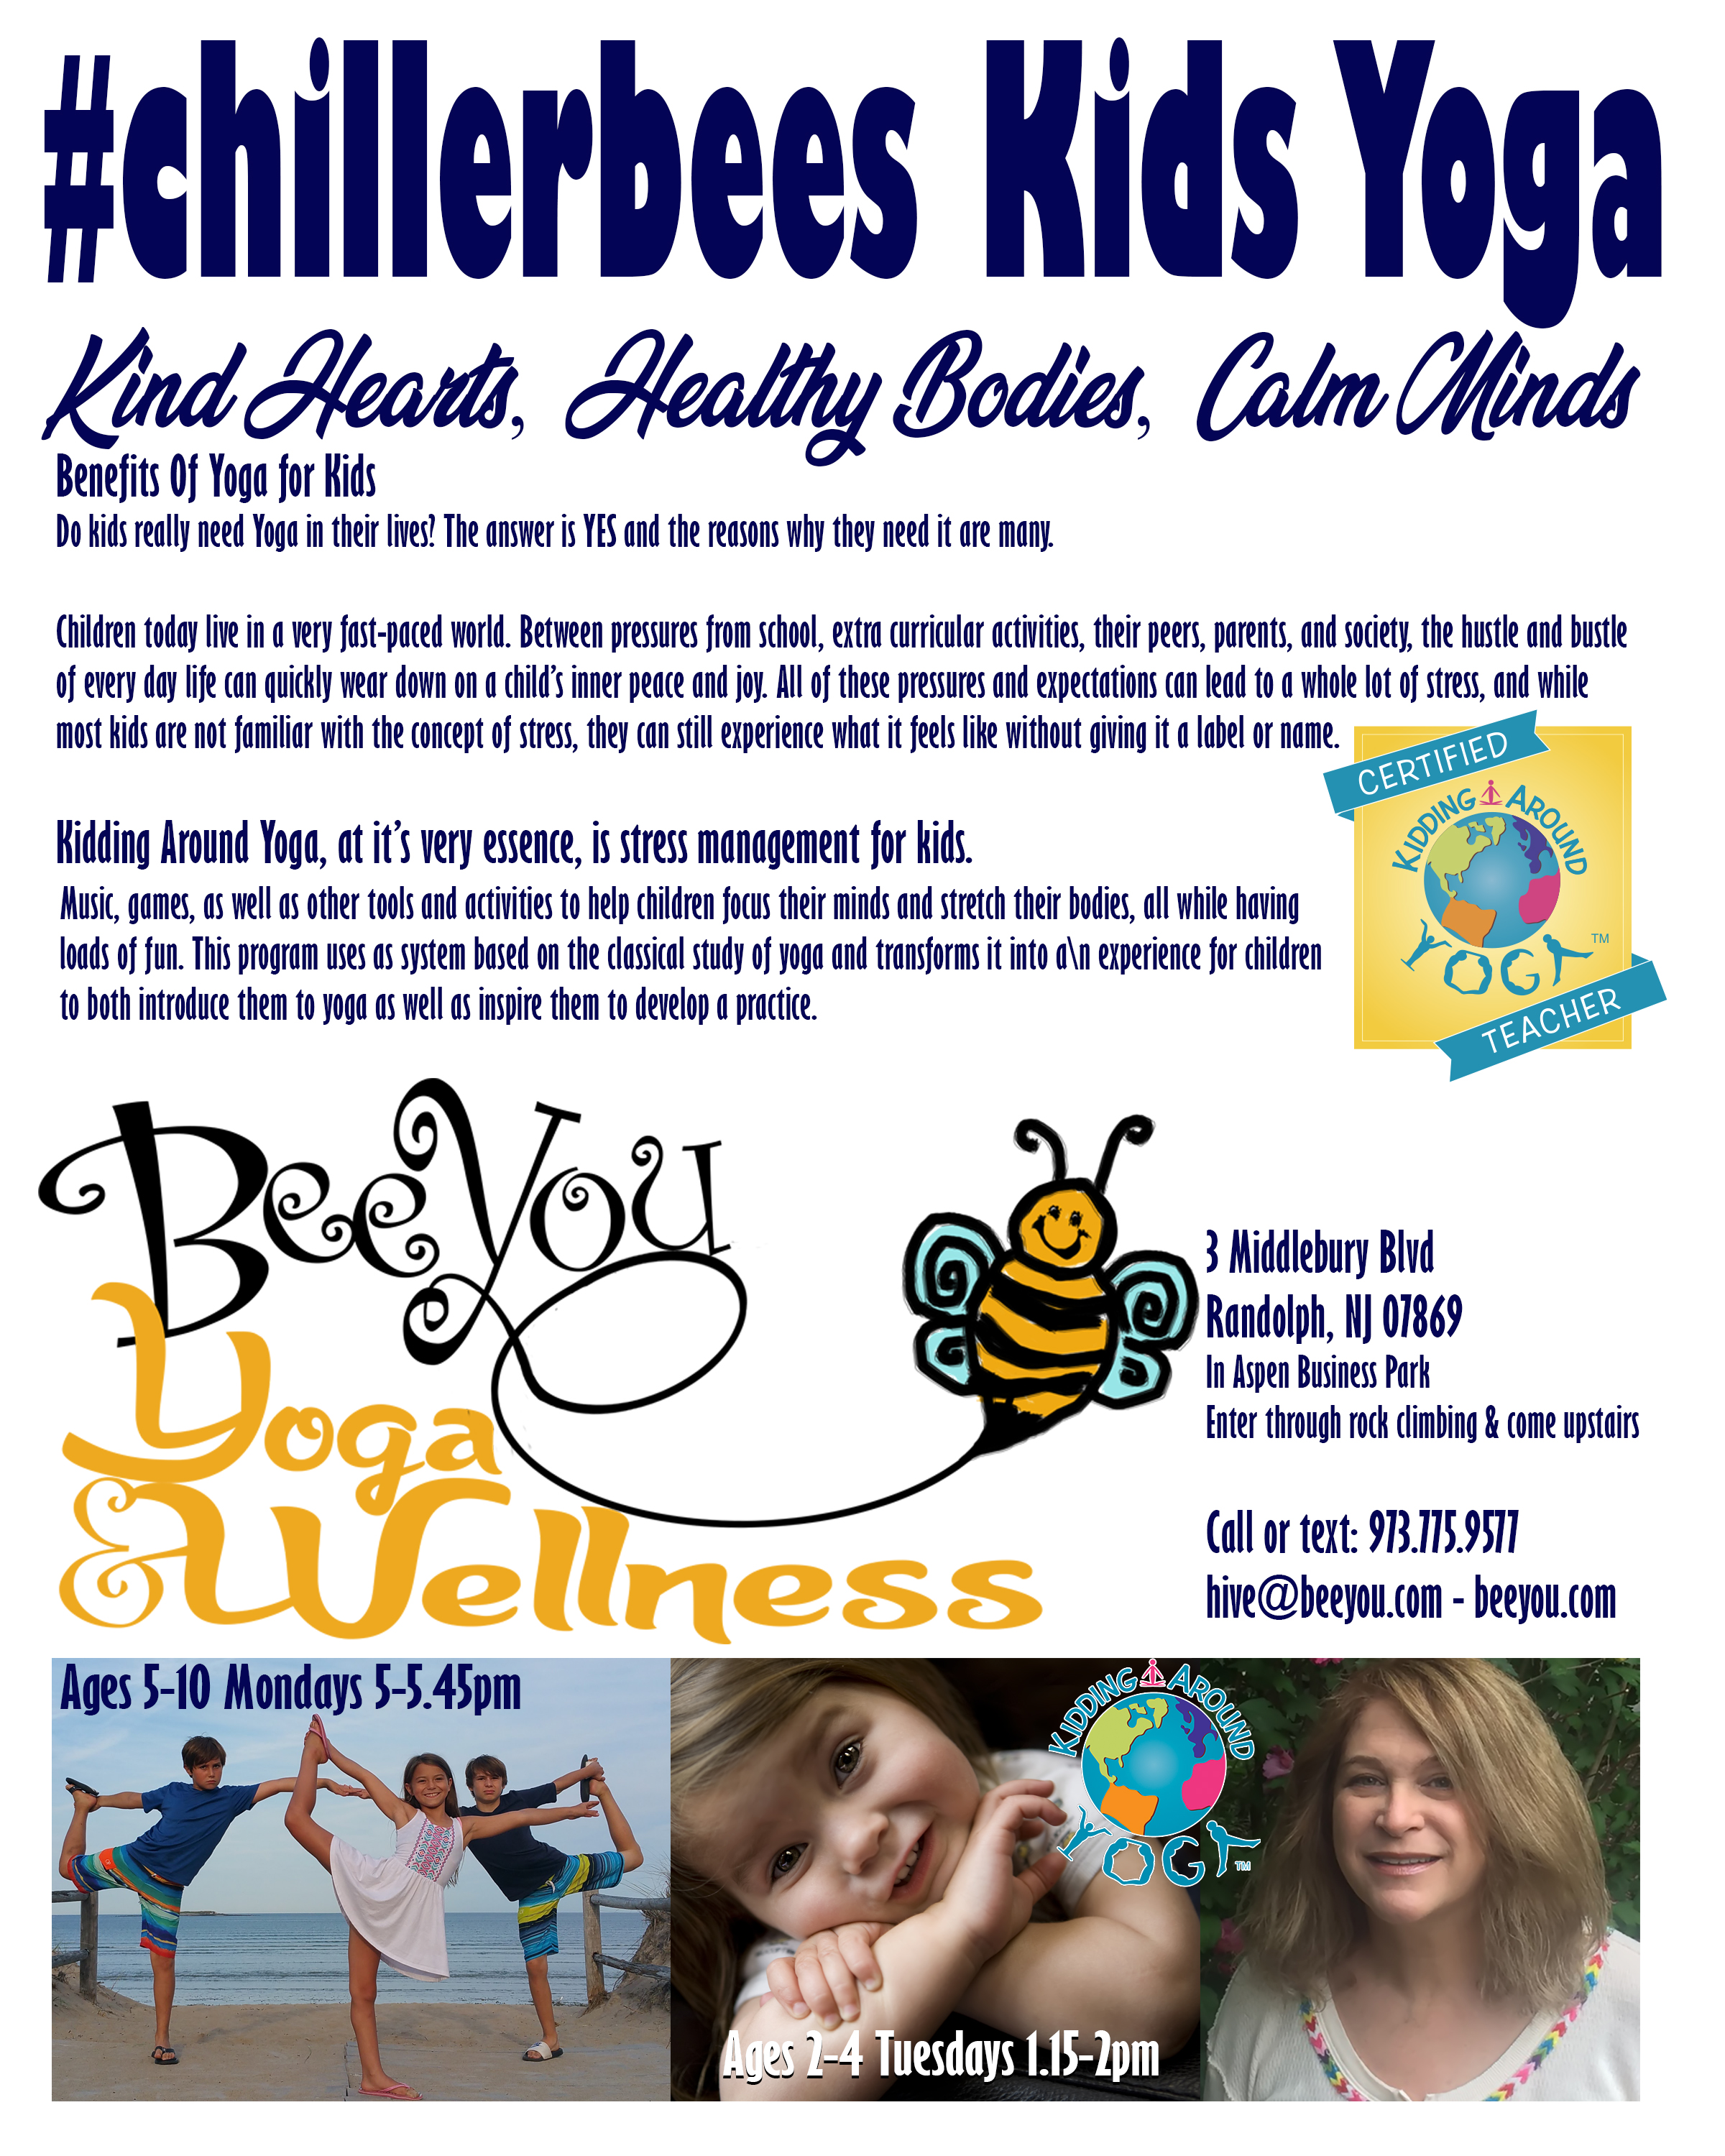 Bee You Yoga and Wellness - Yoga Therapy, Yoga, Yoga for anxiety, Yoga for depression, Yoga for recovery, y12sr, donation based yoga & meditation for everyone, kids yoga, BARRE, Sadie Nardini Yoga Shred Fusion, Full body conditioning, Yoga Nidra, Swedish massage, myofascial release, PSYCH-K, Reiki, BARRE, ZUMBA, Yoga Shred, Bee You Yoga, Yoga 07885, Yoga 07869, Randolph, Roxbury, Mine Hill, New Jersey, North Jersey, Morris County, Yoga Morris County, Buti Yoga, yogassage, theta healing, kidding around yoga